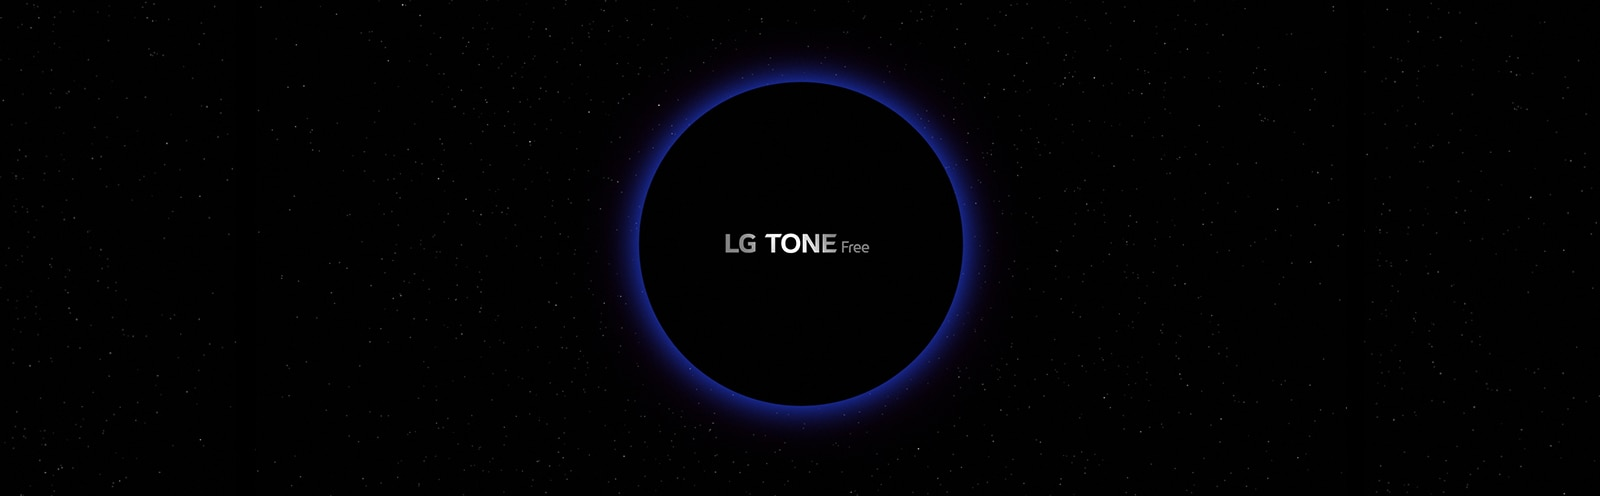 """An image of a galaxy space and a blue-lighted circle in the middle of it with """"LG TONE Free"""" lettering inside the circle"""